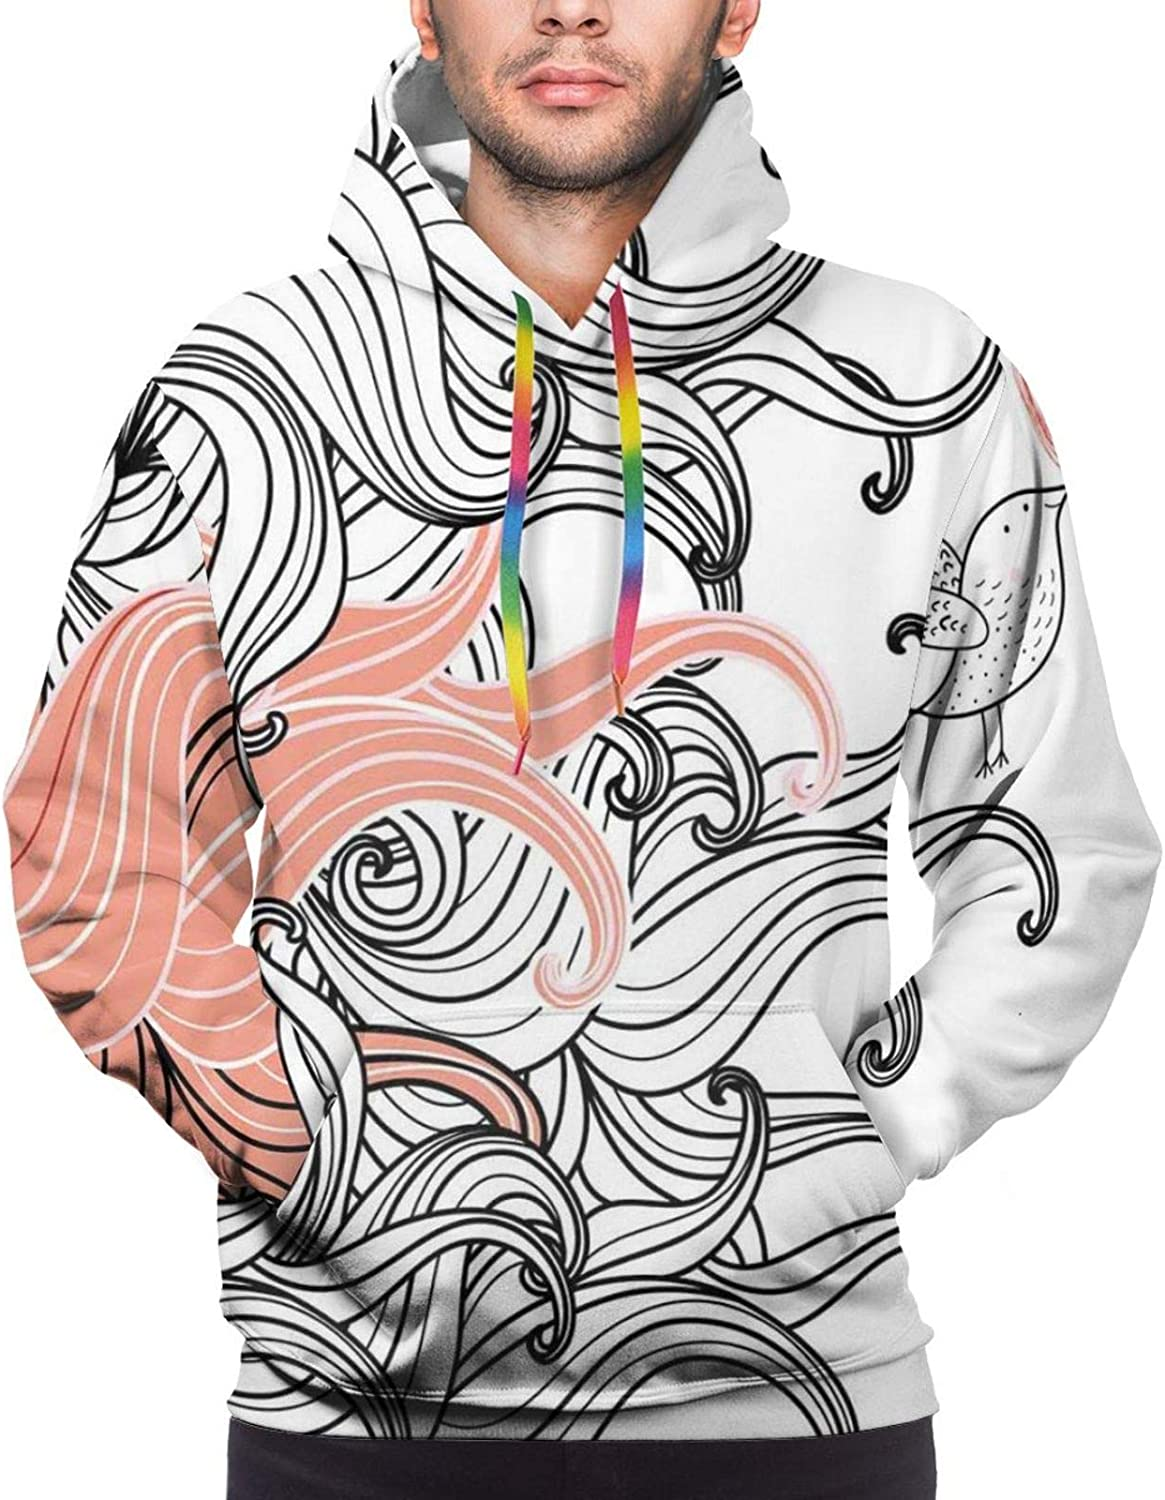 Men's Hoodies Sweatshirts,Graphic Stylized Spring Flowers with Stems in Blossom Print On Dotted Background